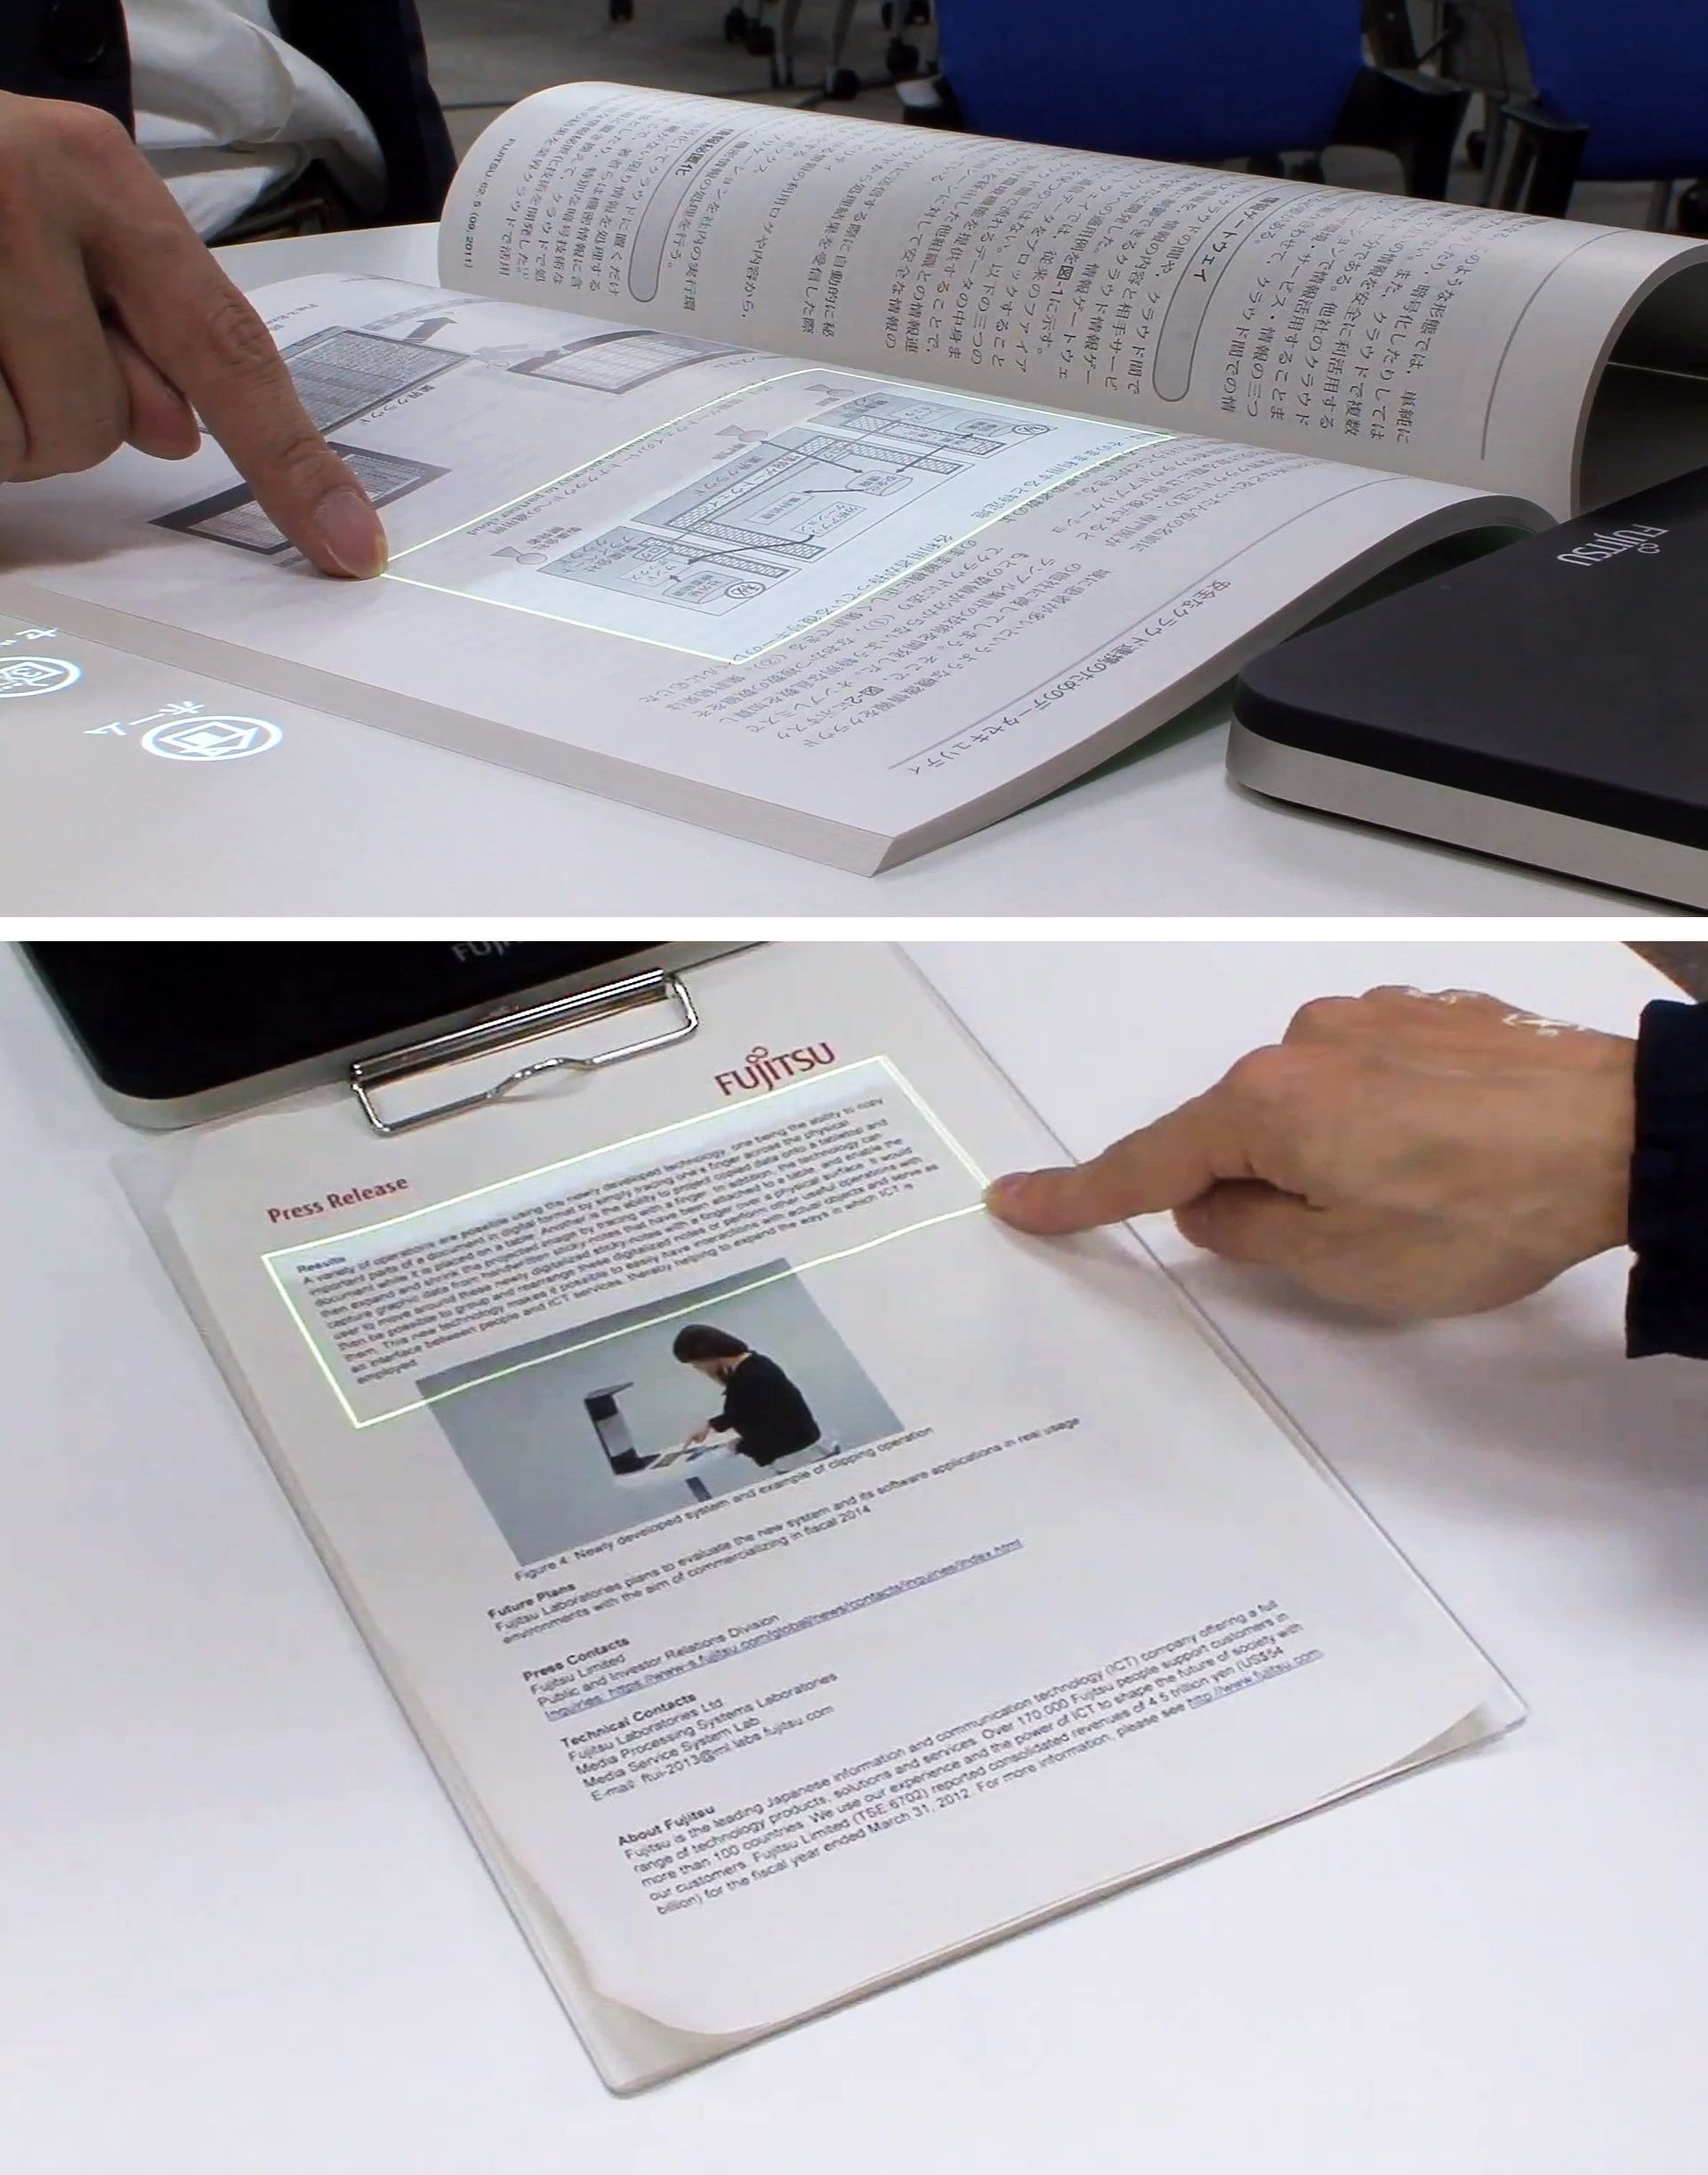 Very cool. This technology turns paper into a touchscreen